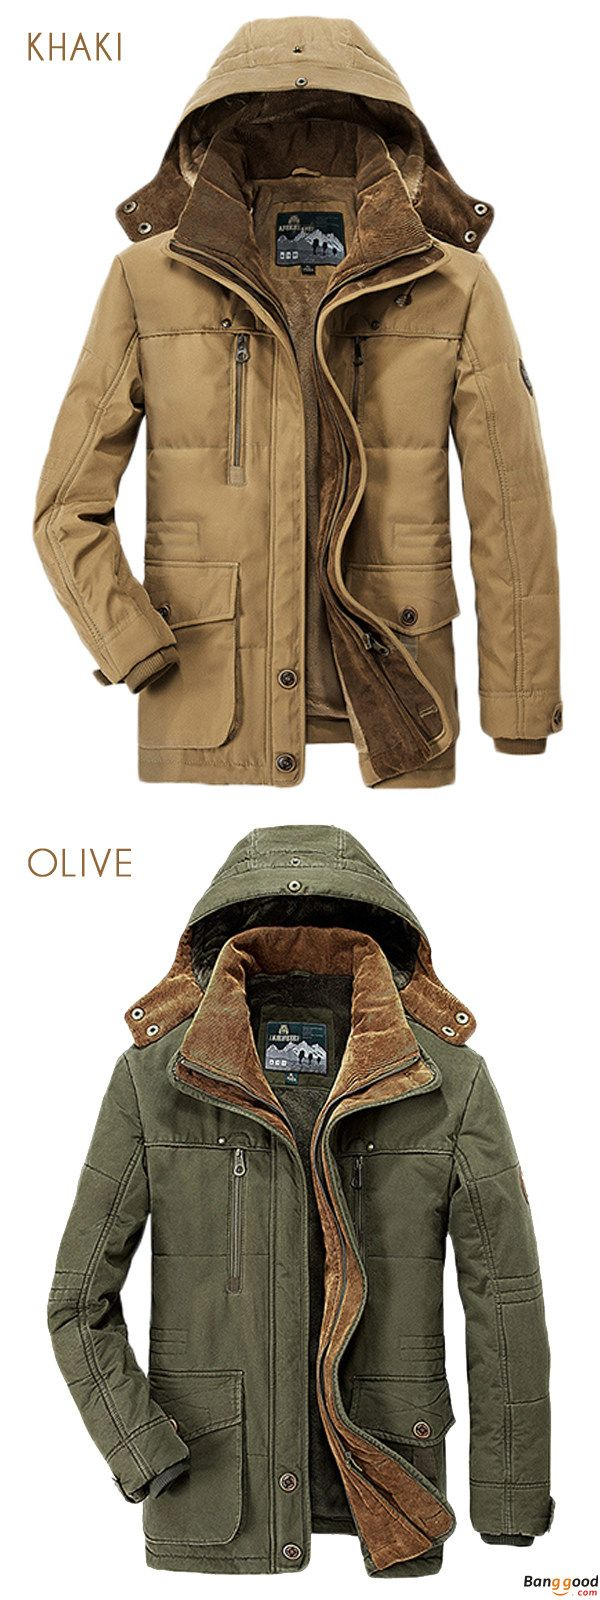 Limited Price: US$99.99 + Free Shipping. Mens Thick Fleece Winter Coat Hooded Outdoor Solid Color Jacket.  100% Cotton. Color: Blue, Coffee, Army Green, Khaki. Shop Now!